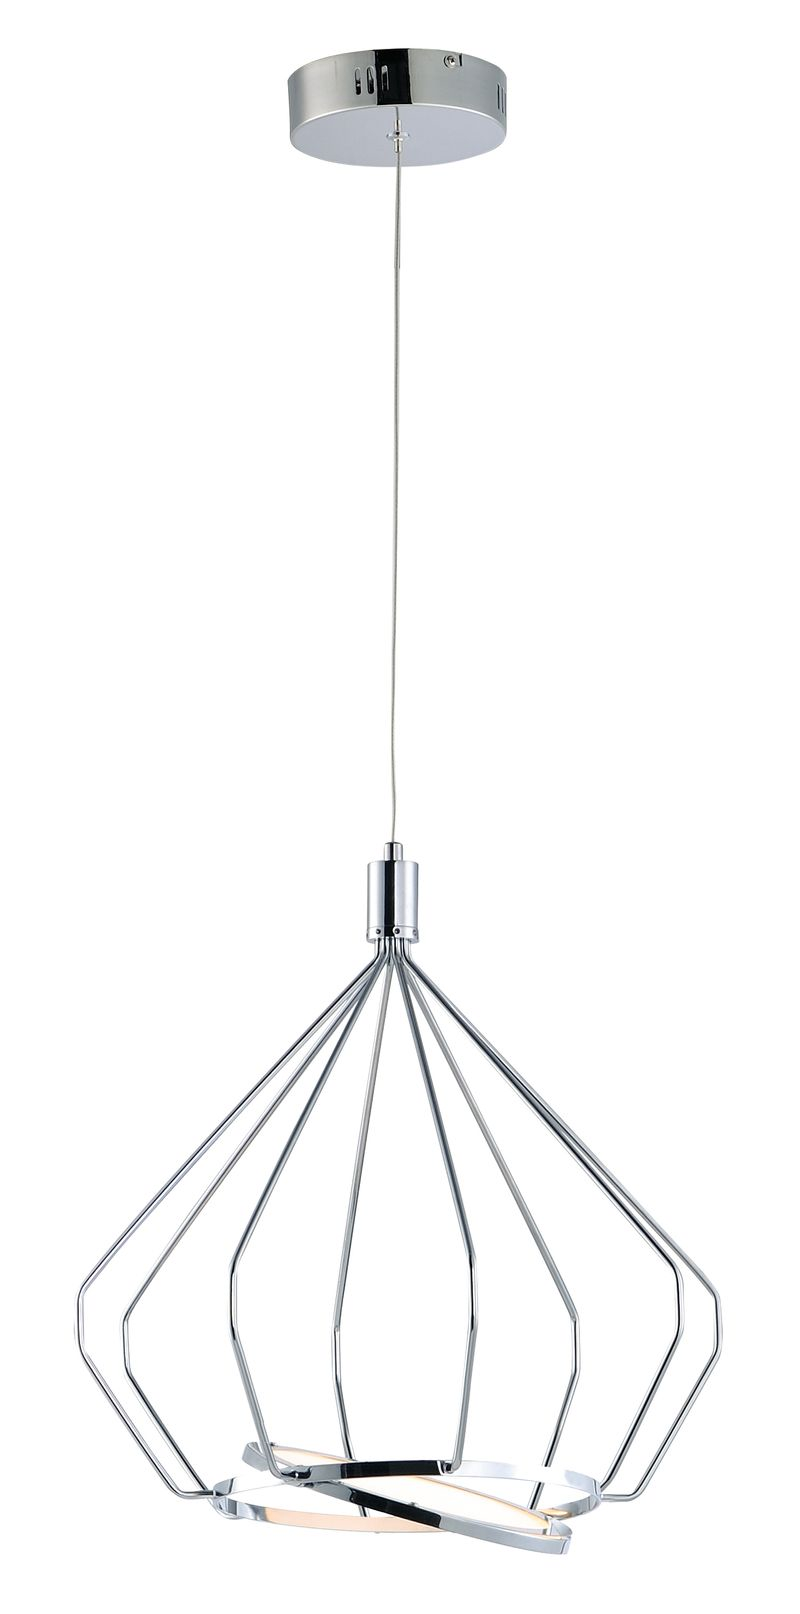 "Tilt 15.5"" 1-Light Linear Pendant - Polished Chrome"